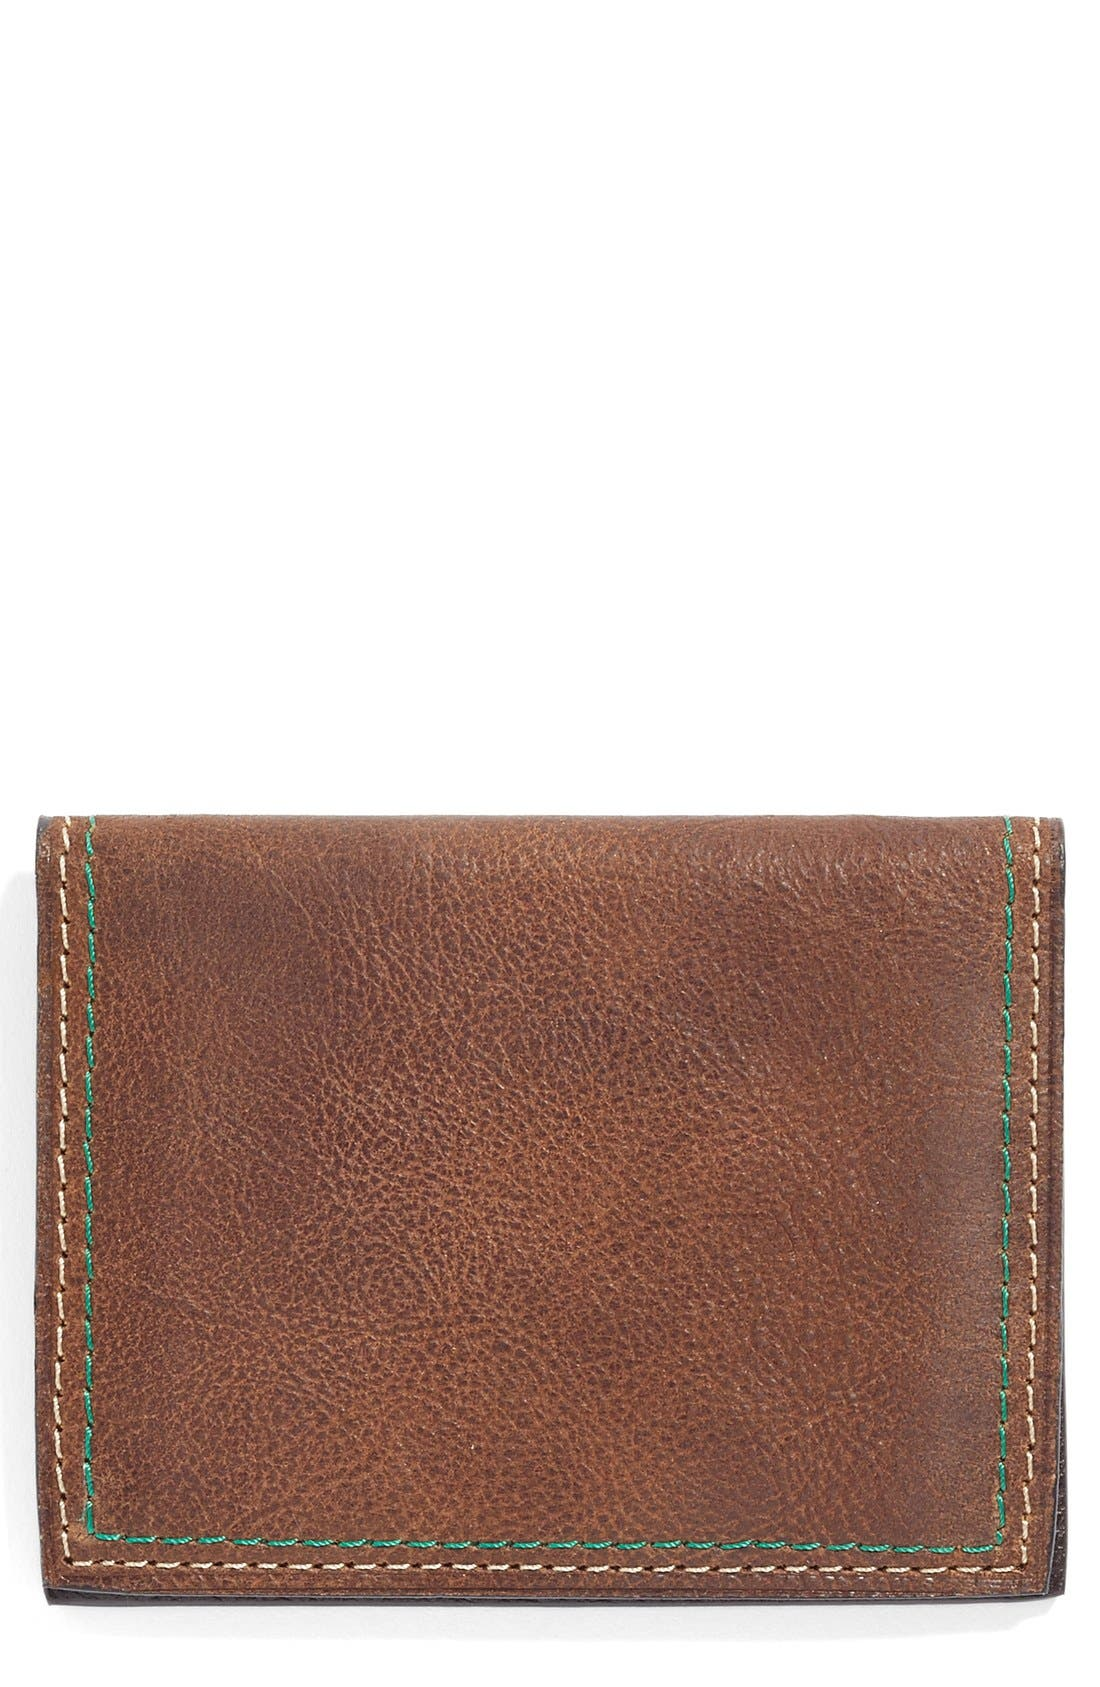 Alternate Image 1 Selected - Martin Dingman Water Buffalo Leather Card Case